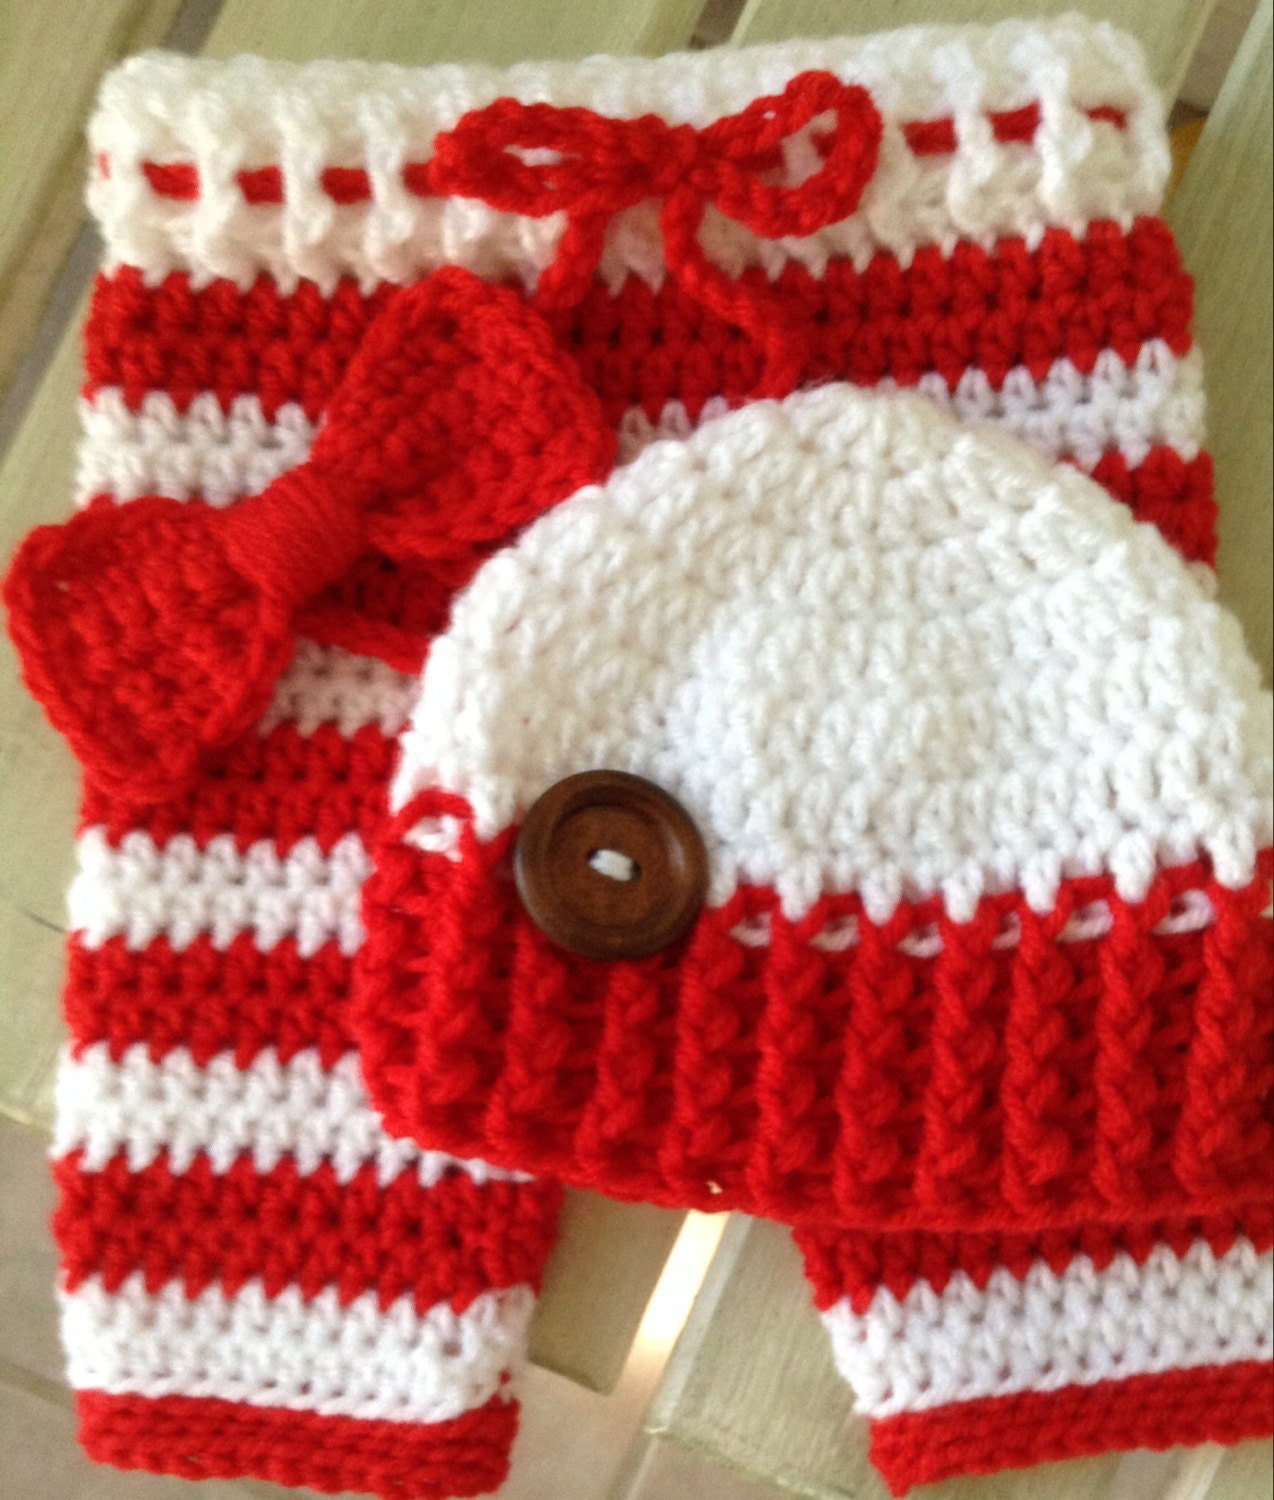 Crochet Baby Hat With Ties Pattern : Crochet baby pants crochet hat bow tie crochet diaper